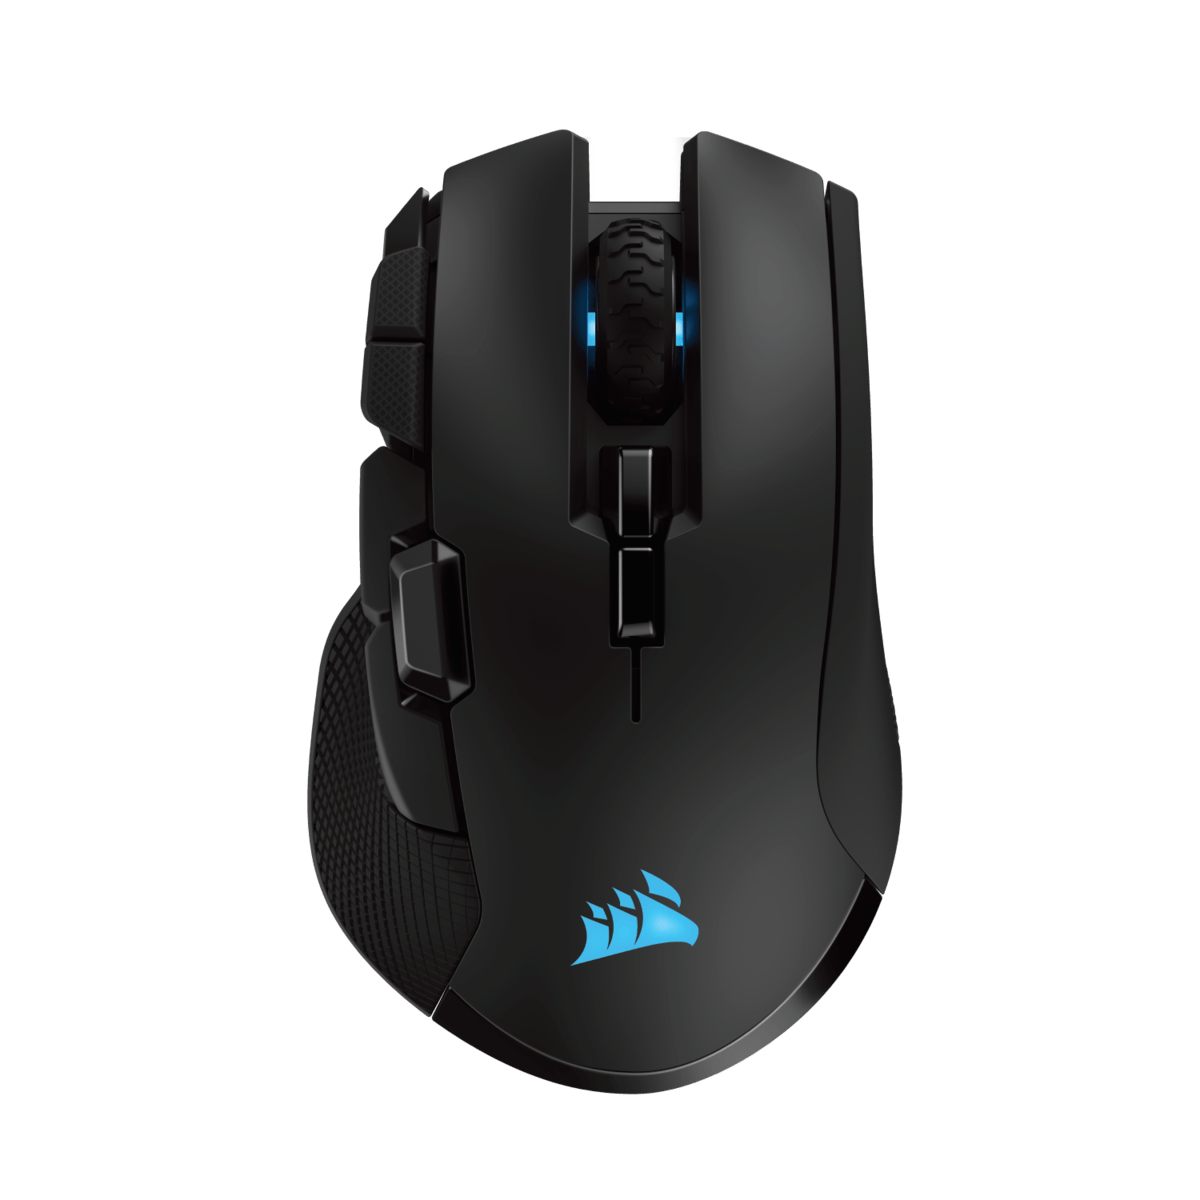 Amazon Slashes Price Off The Corsair Ironclaw RGB Mouse, Device Designed For Users With Larger Hands